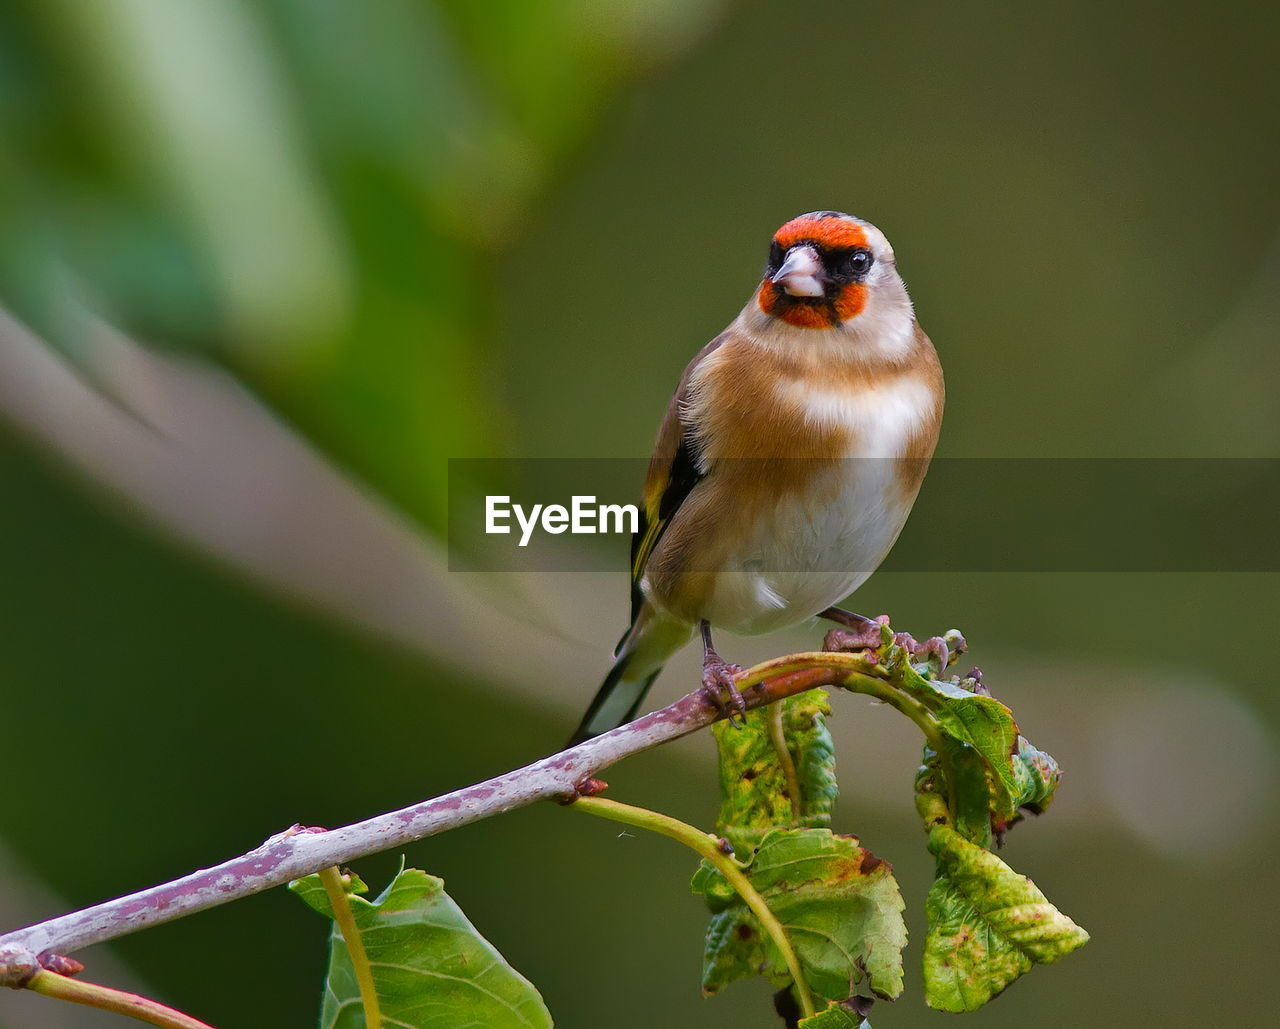 Goldfinch perching on twig